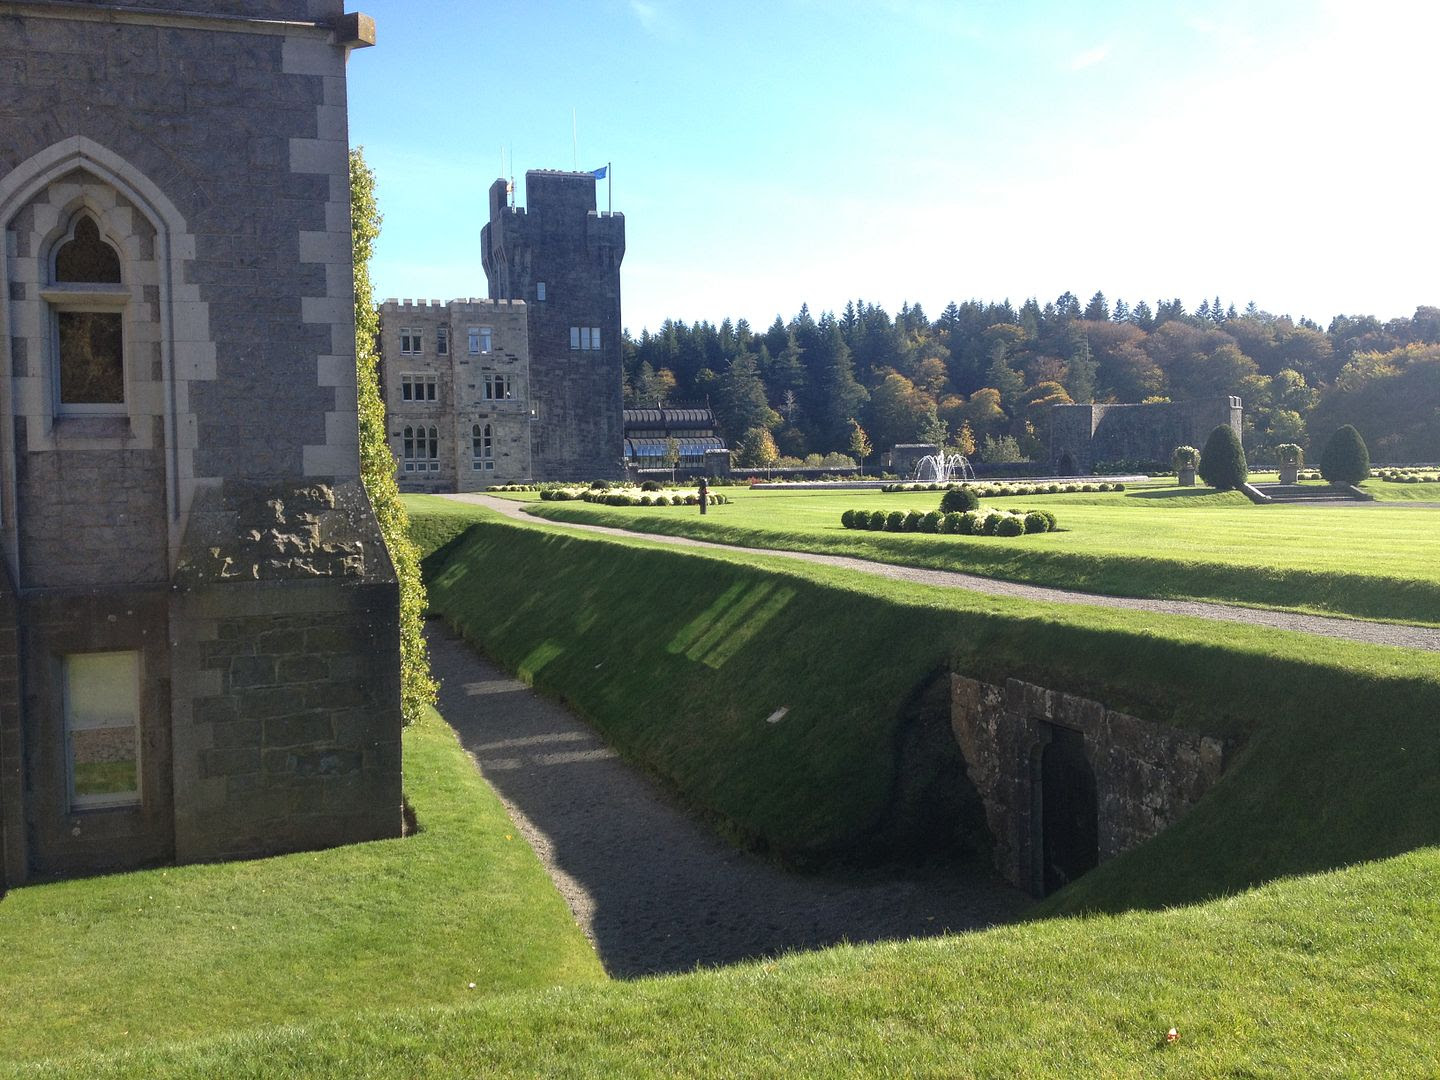 Ashford Castle, Ireland photo 2015-10-13 13.01.50_zpsd2rmszqk.jpg